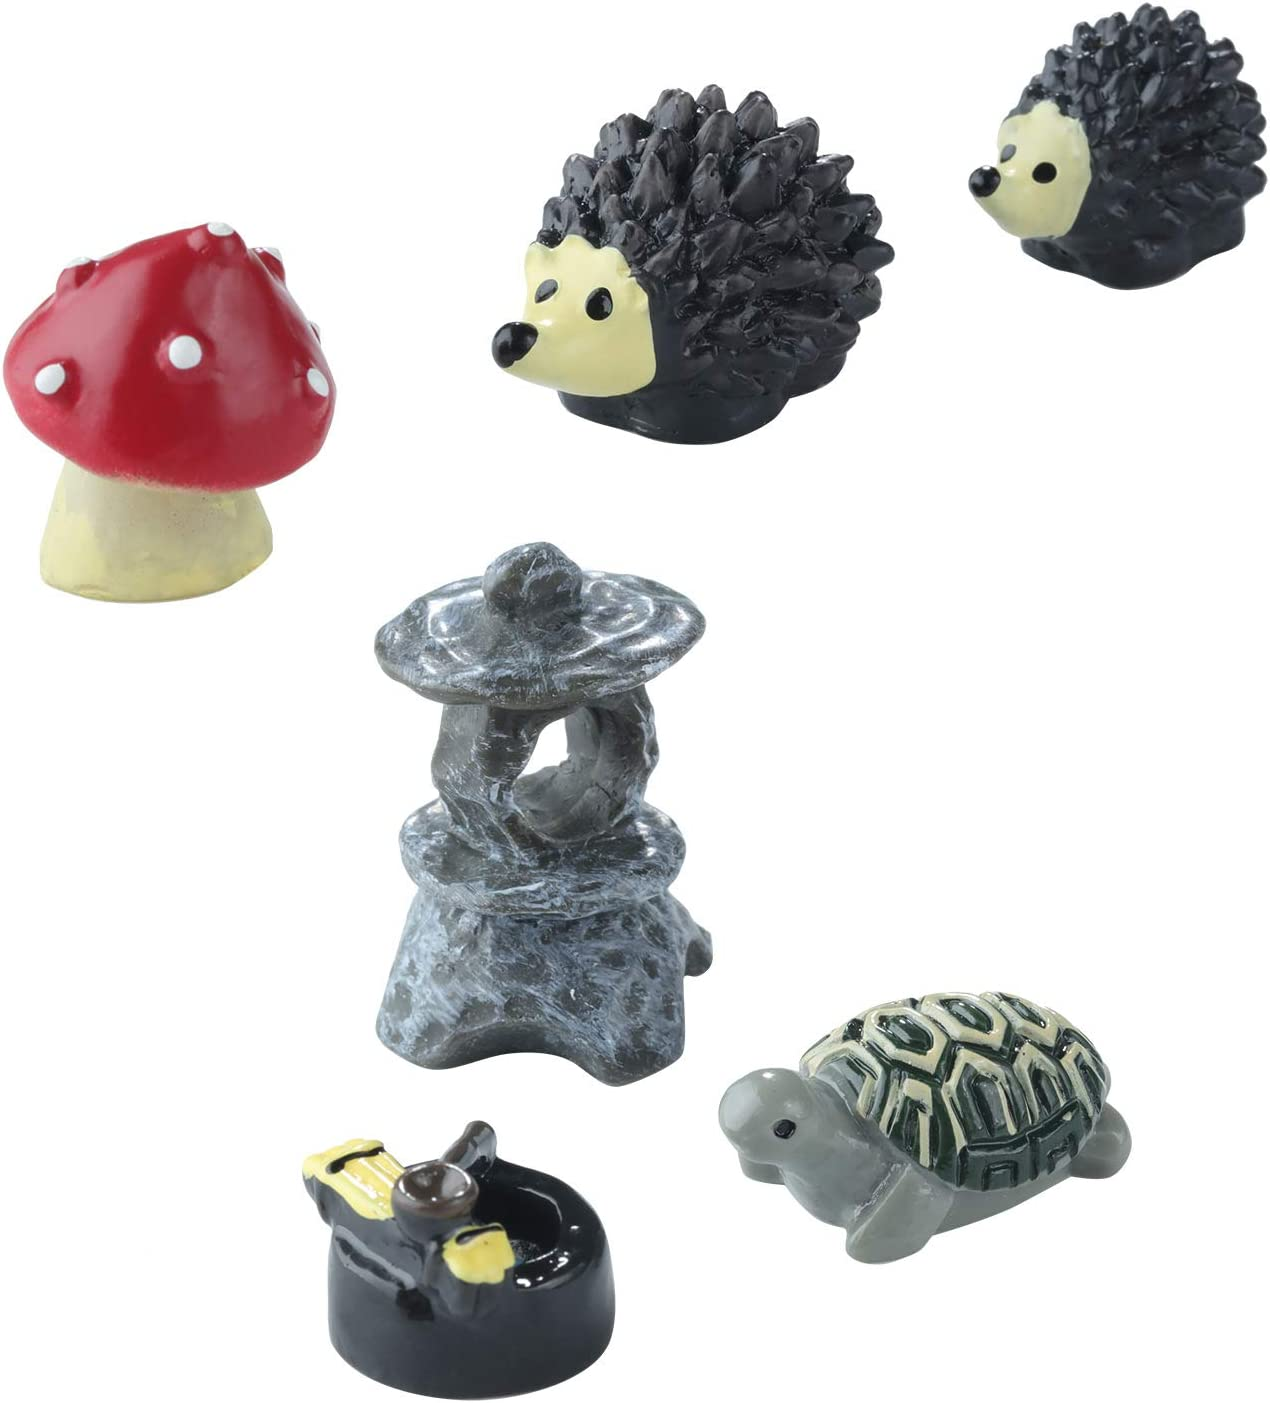 Sumind 6 Pieces Fairy Garden Accessories Miniature Garden Ornaments, Fairy Garden Animals for Dollhouse Decoration, Bonsai Craft, Micro Landscape, Mini Hedgehogs and Mushroom